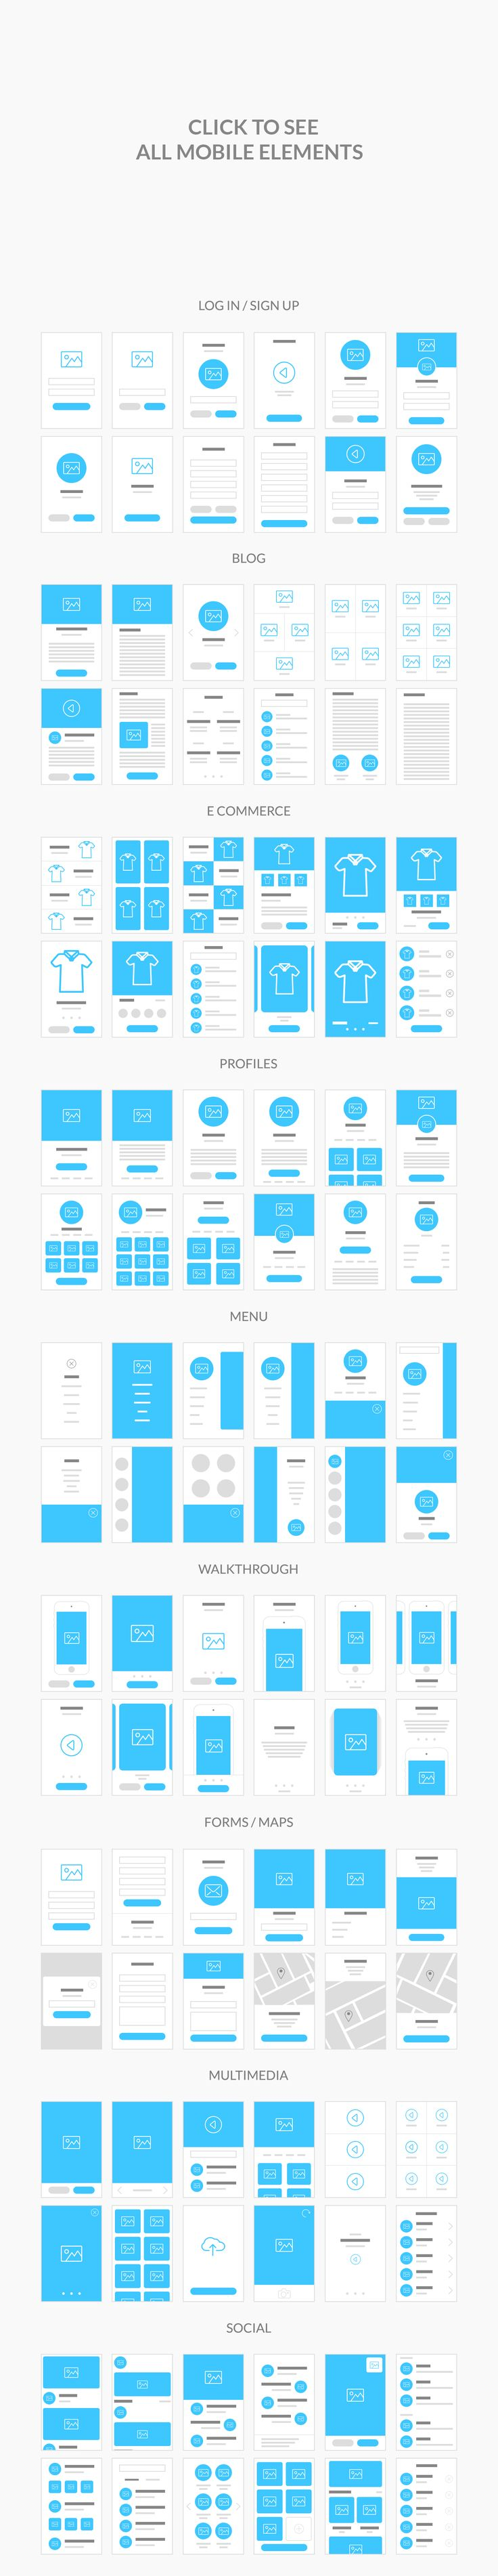 Flowy Flowchart Elements #ux #flowchart #wireframe 	#websiteflowchart #webflowchart #mobileflowchart #appflowchart	#web #website #app #scheme #site #sitemap #flow #userflow #flowcharts #photoshop